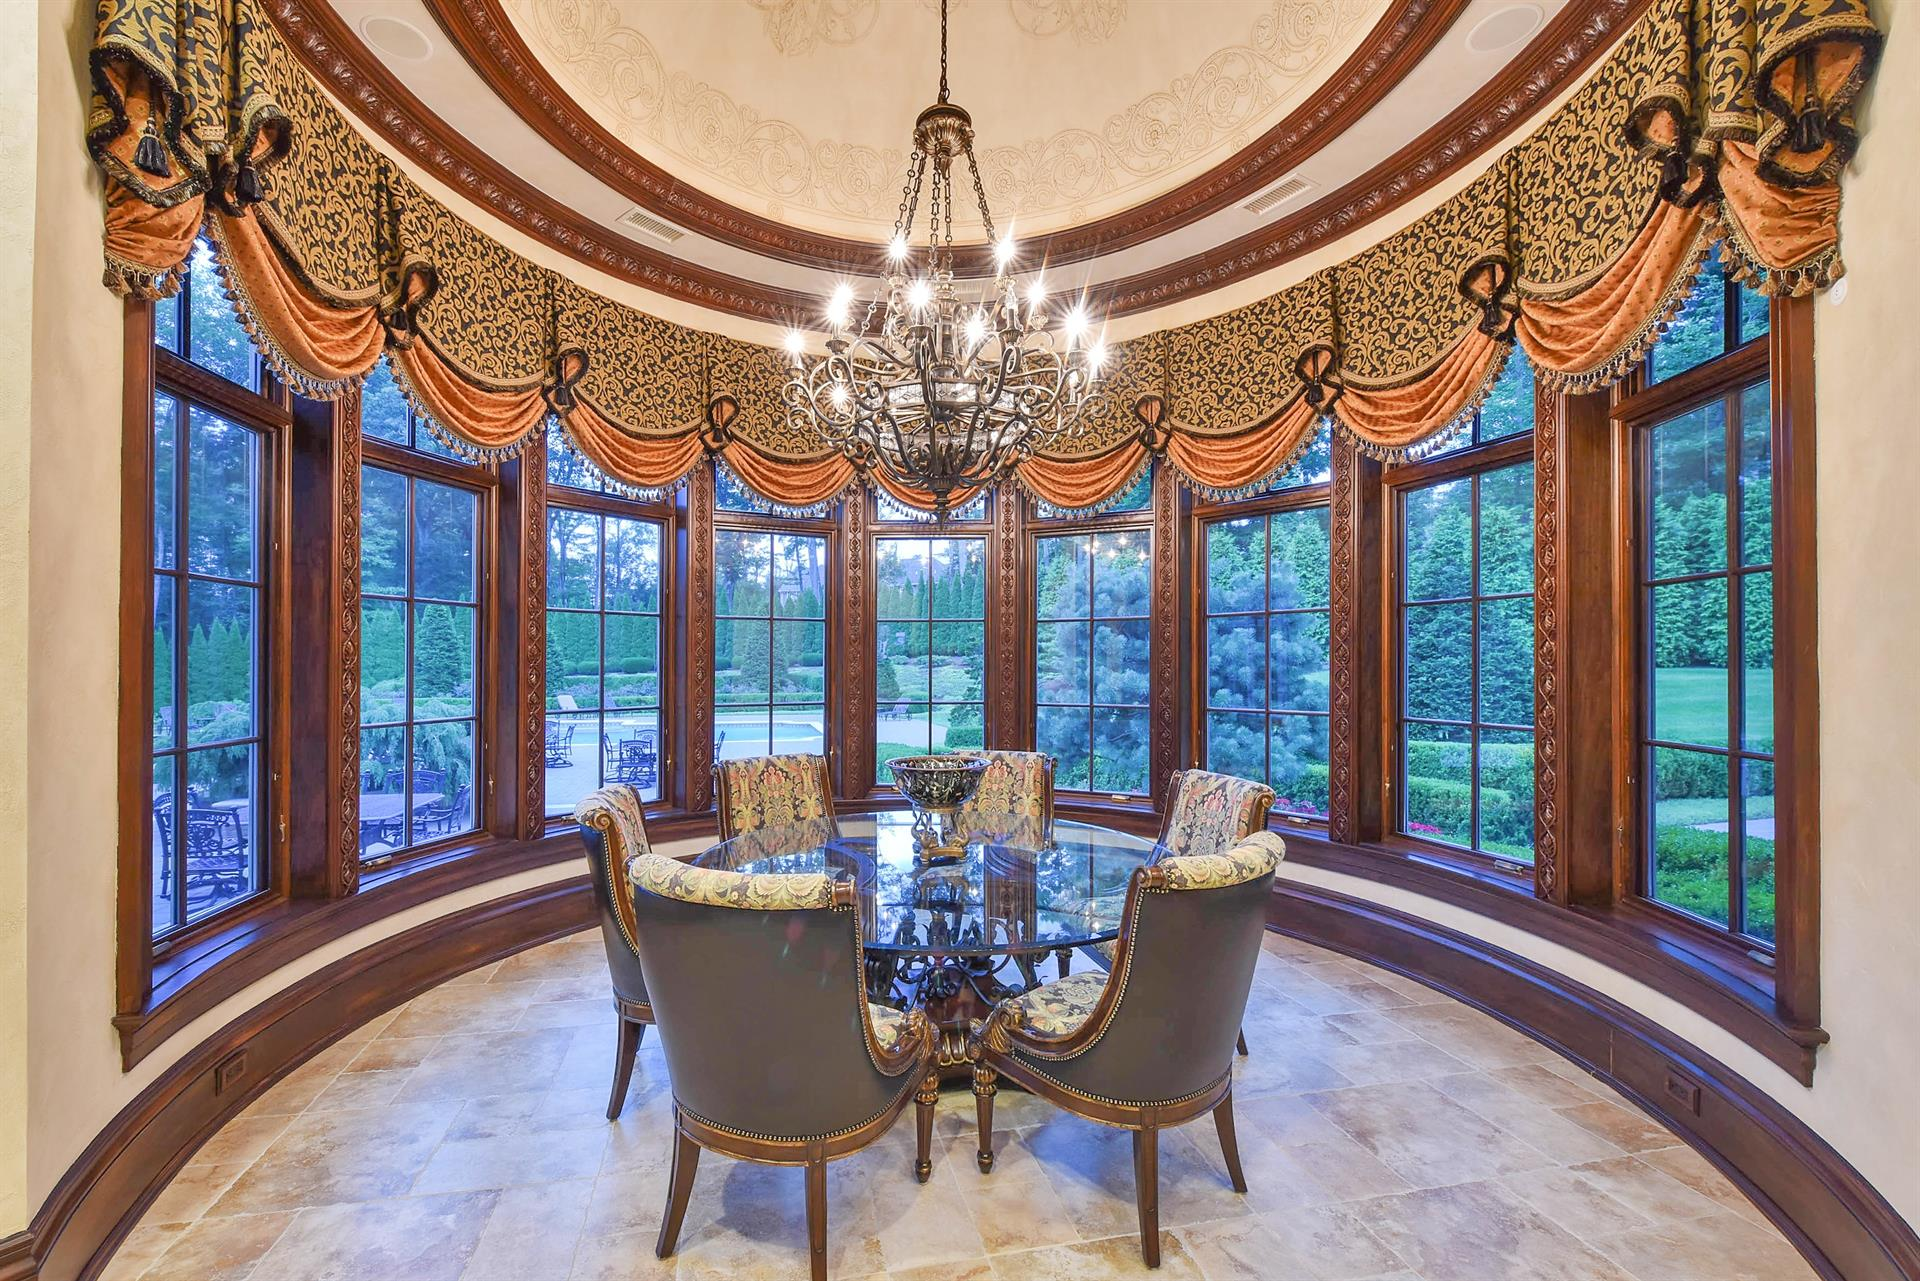 Additional photo for property listing at Ramapo Mountain Estate, Mahwah, New Jersey  Mahwah, New Jersey 07430 United States